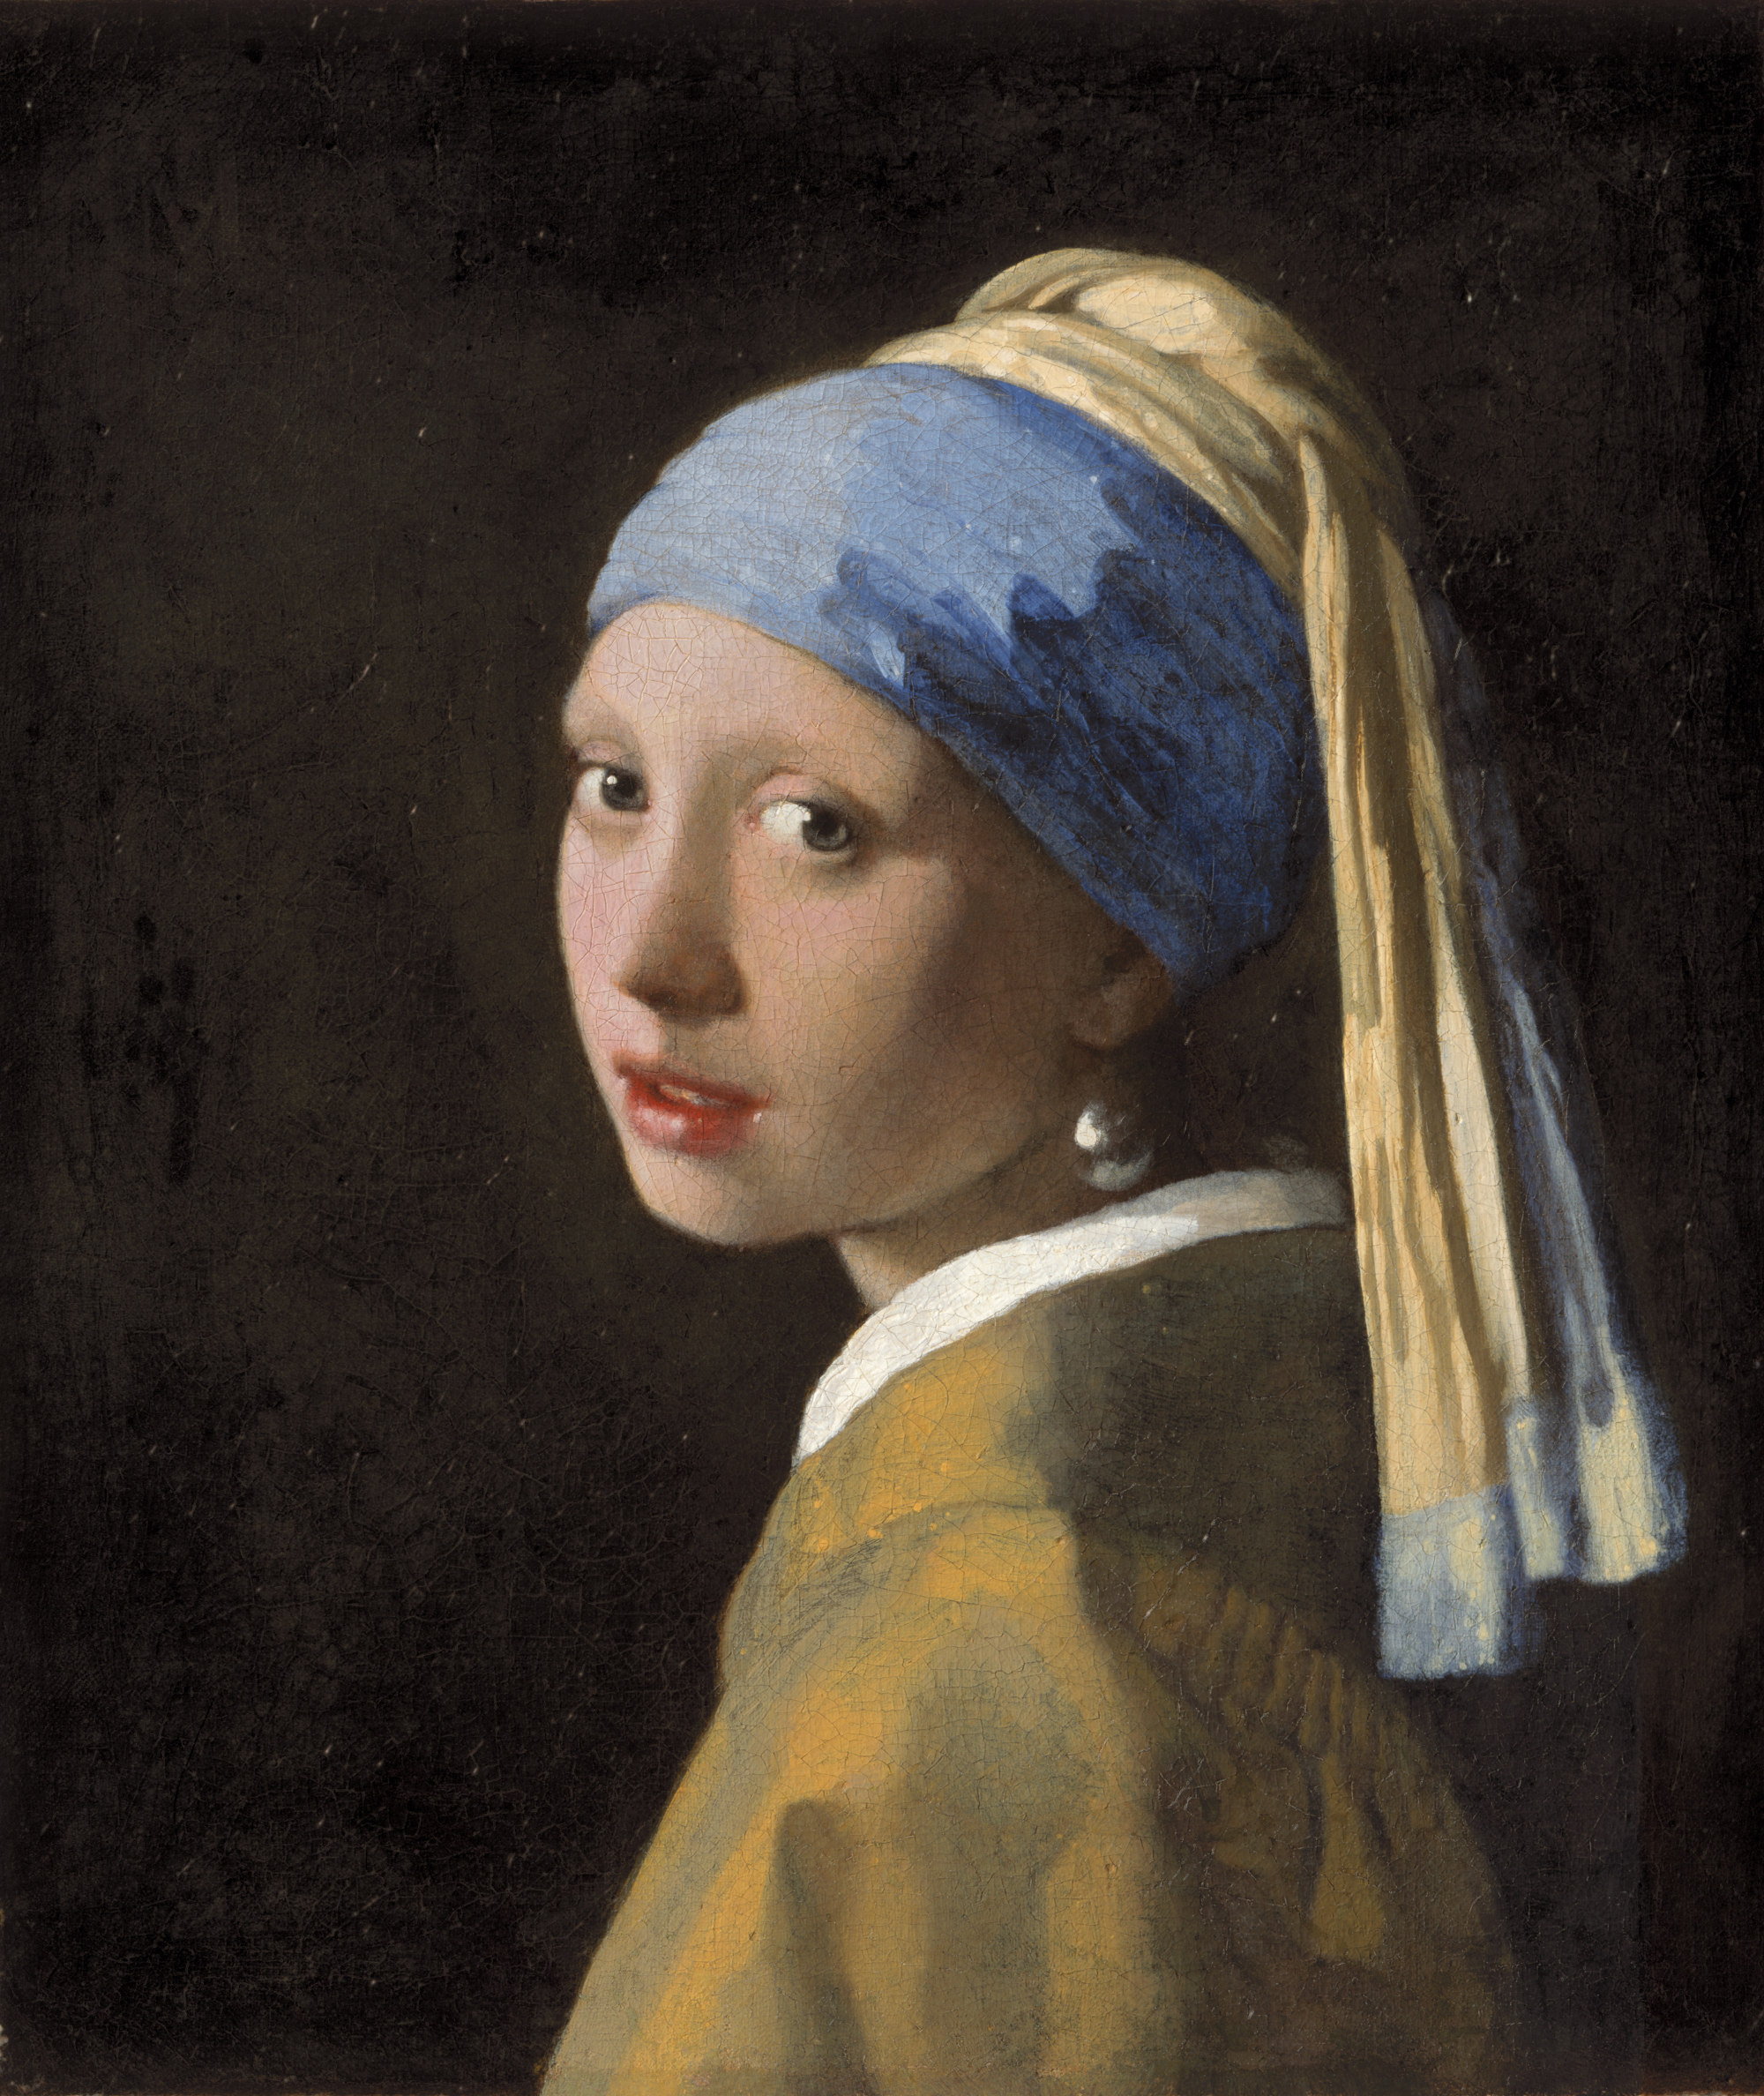 Vermeer's 'Girl with a Pearl Earring'